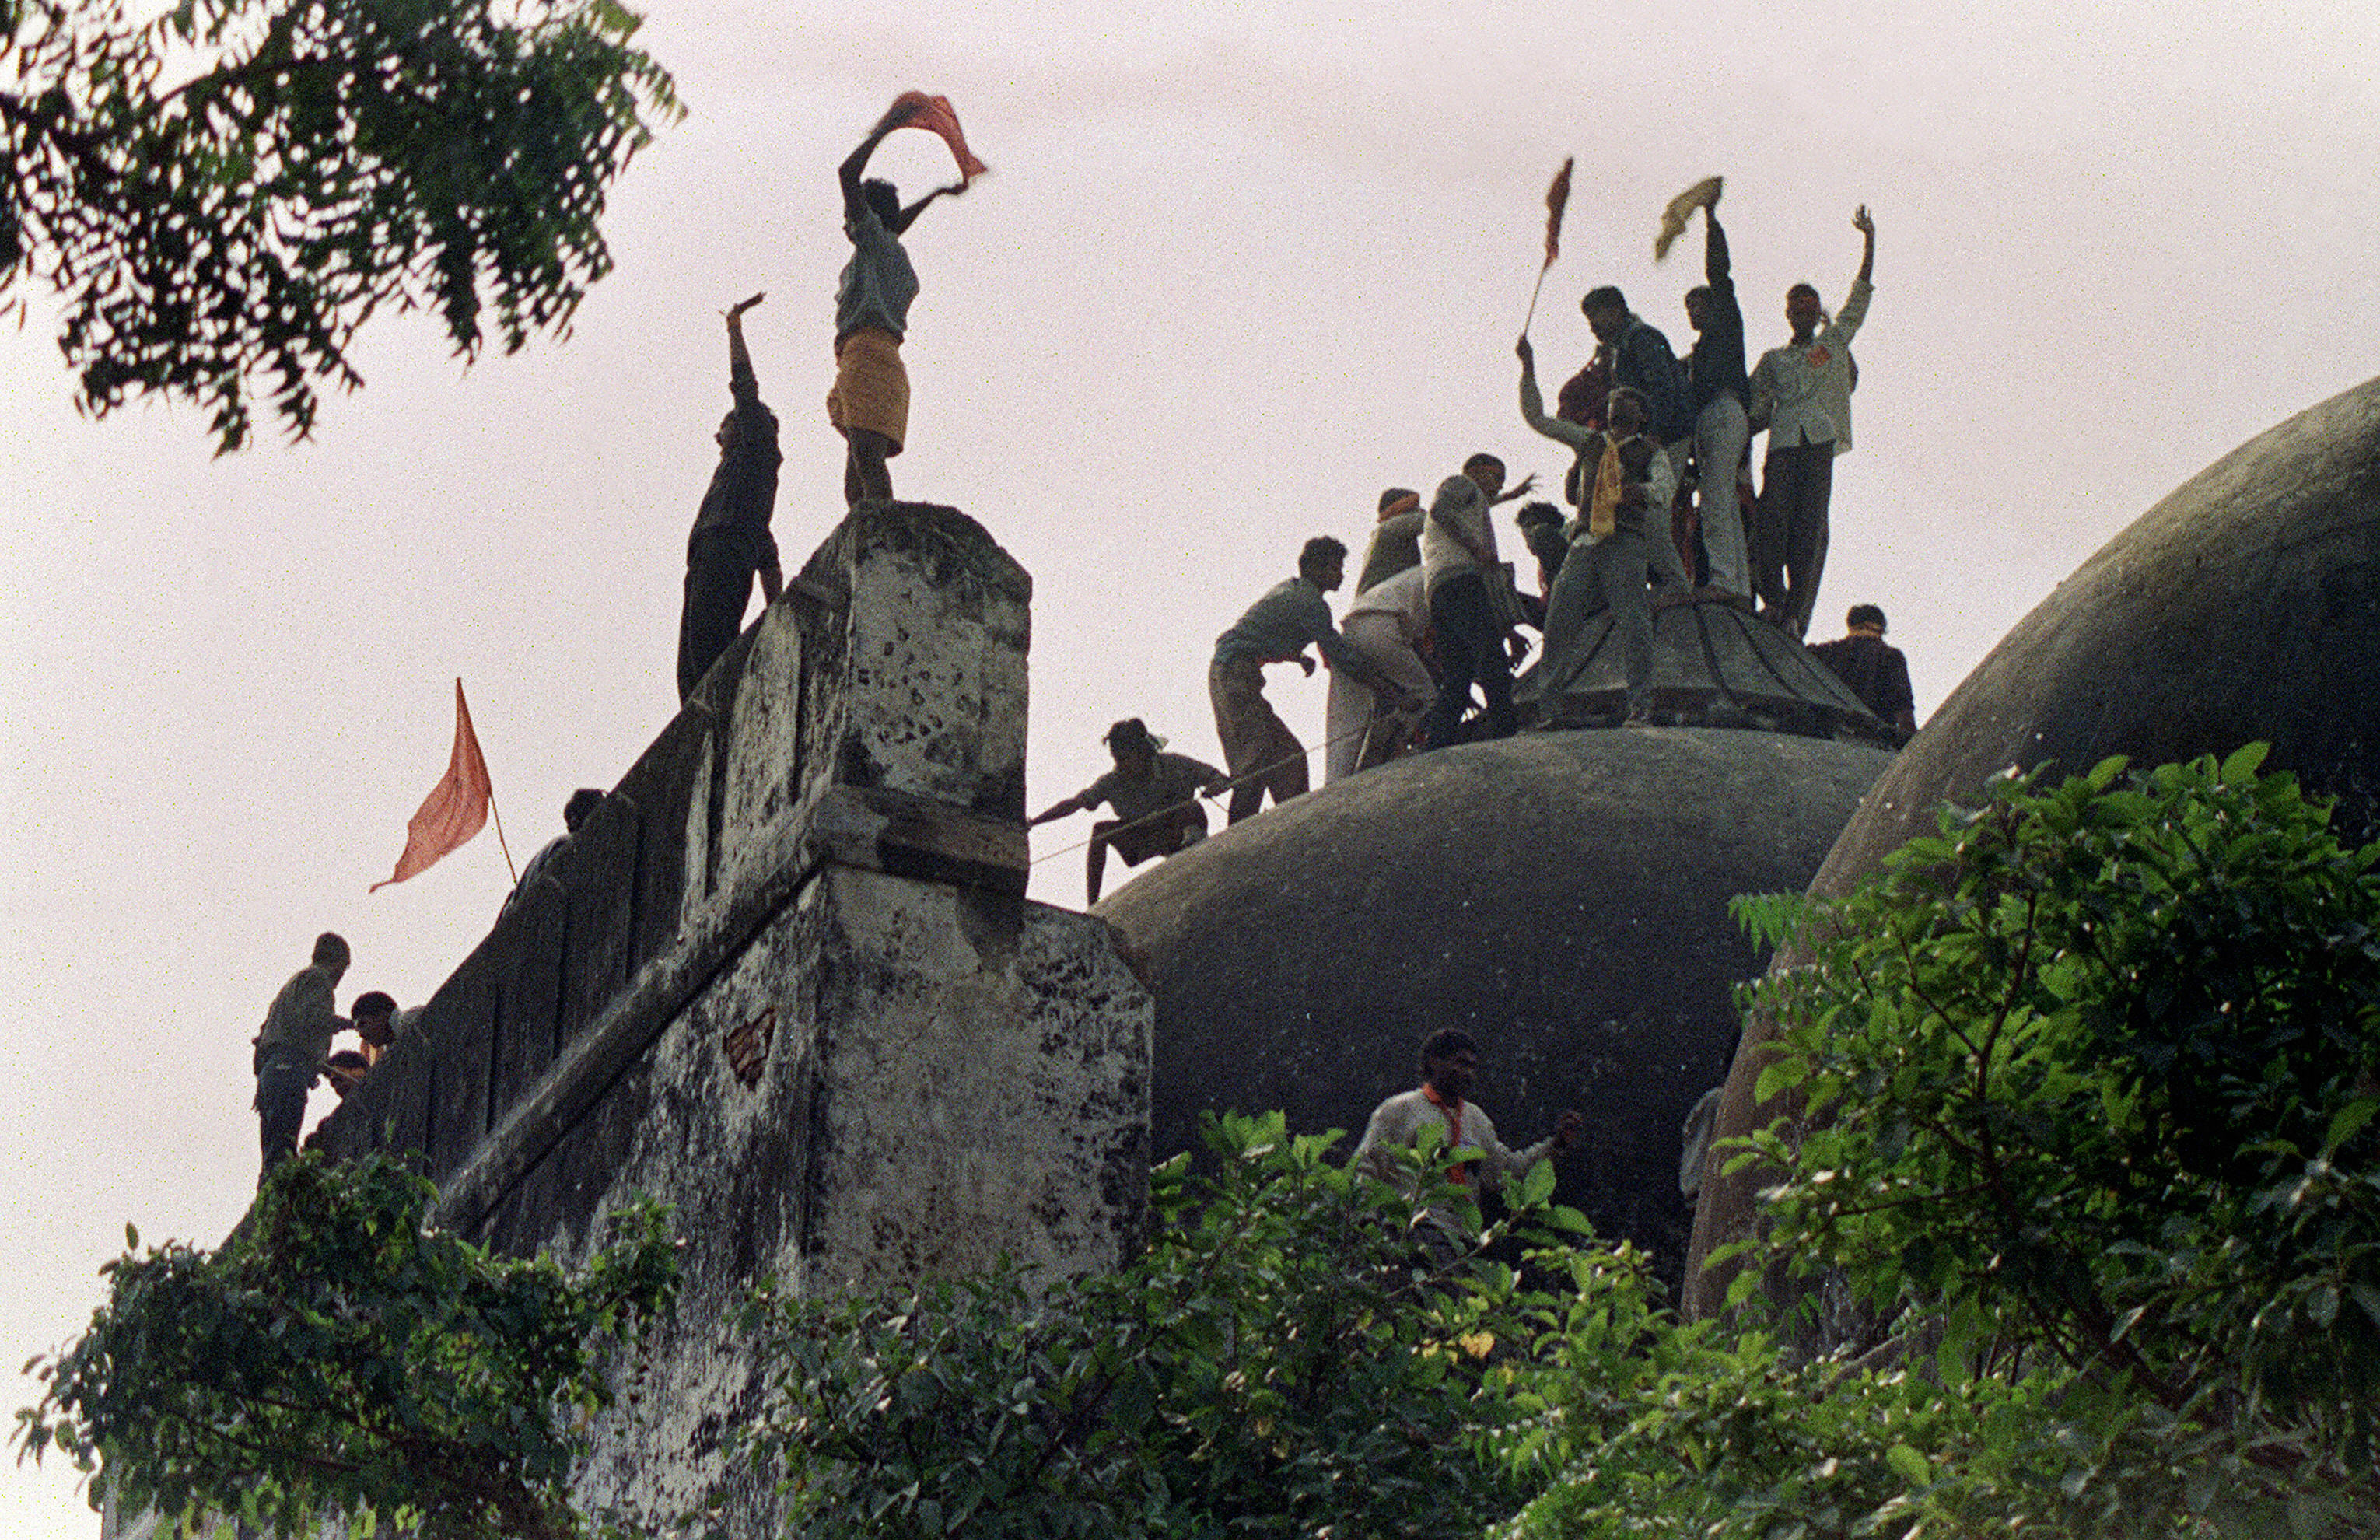 On December 6, 1992 a Hindu mob climbs atop the 16th century Muslim Babri Mosque five hours before the structure was completely demolished by hundreds of Hindu fundamentalist activists.